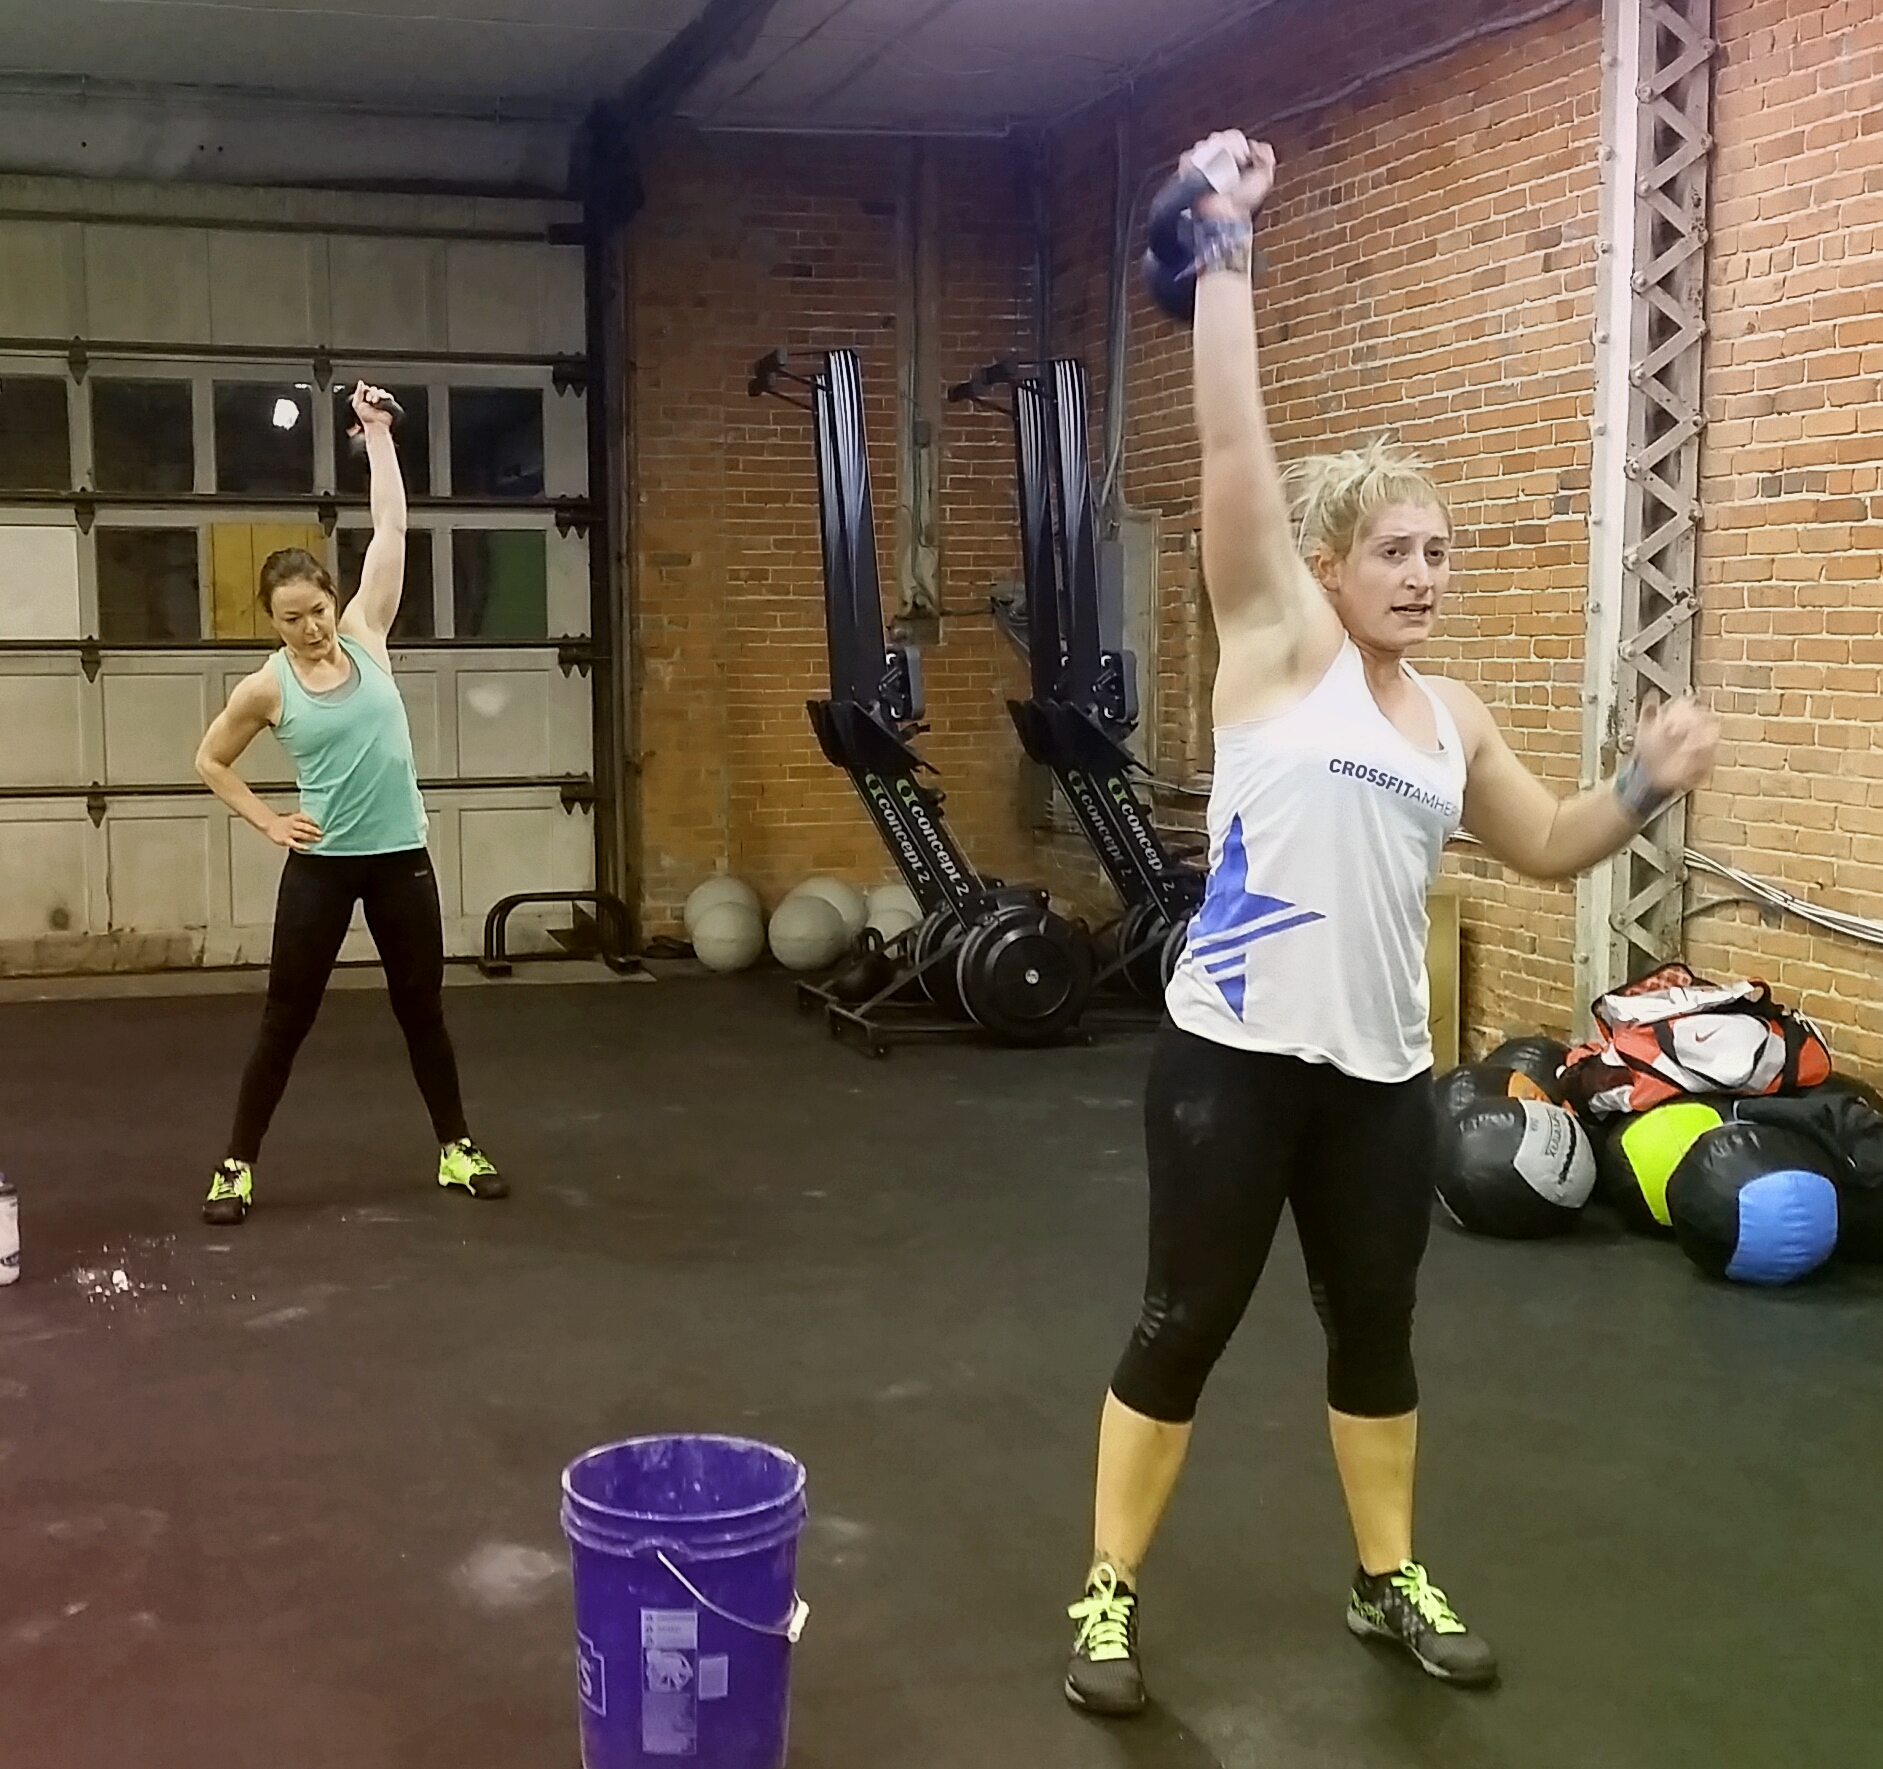 Crossfit kettlebell snatches